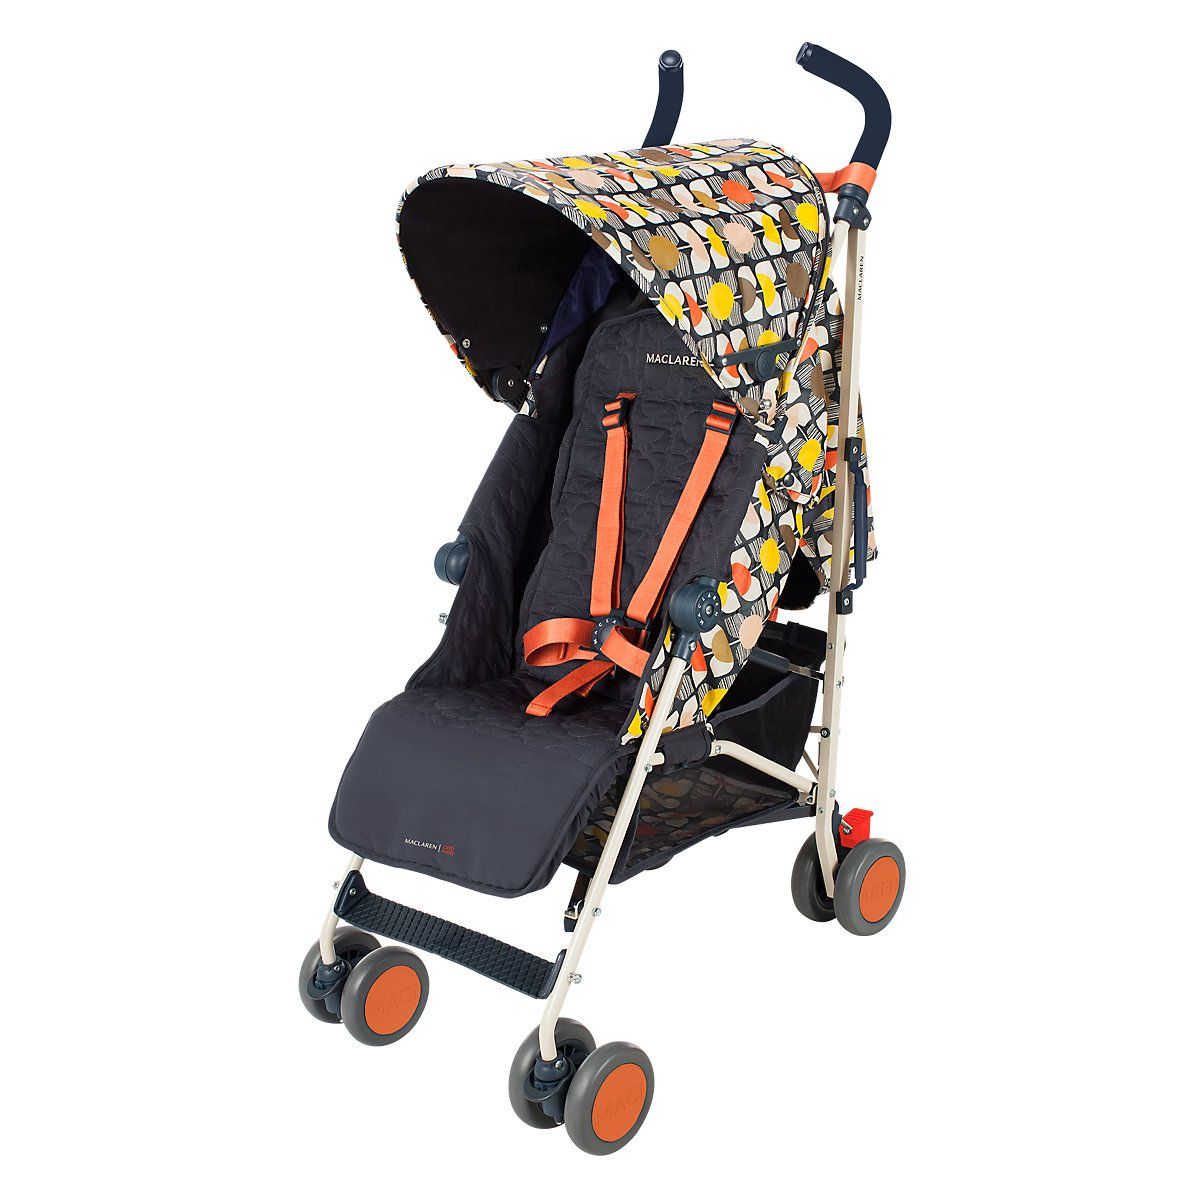 Chanceliere Poussette Safety First Maclaren Orla Keily Lightweight And Stylish The